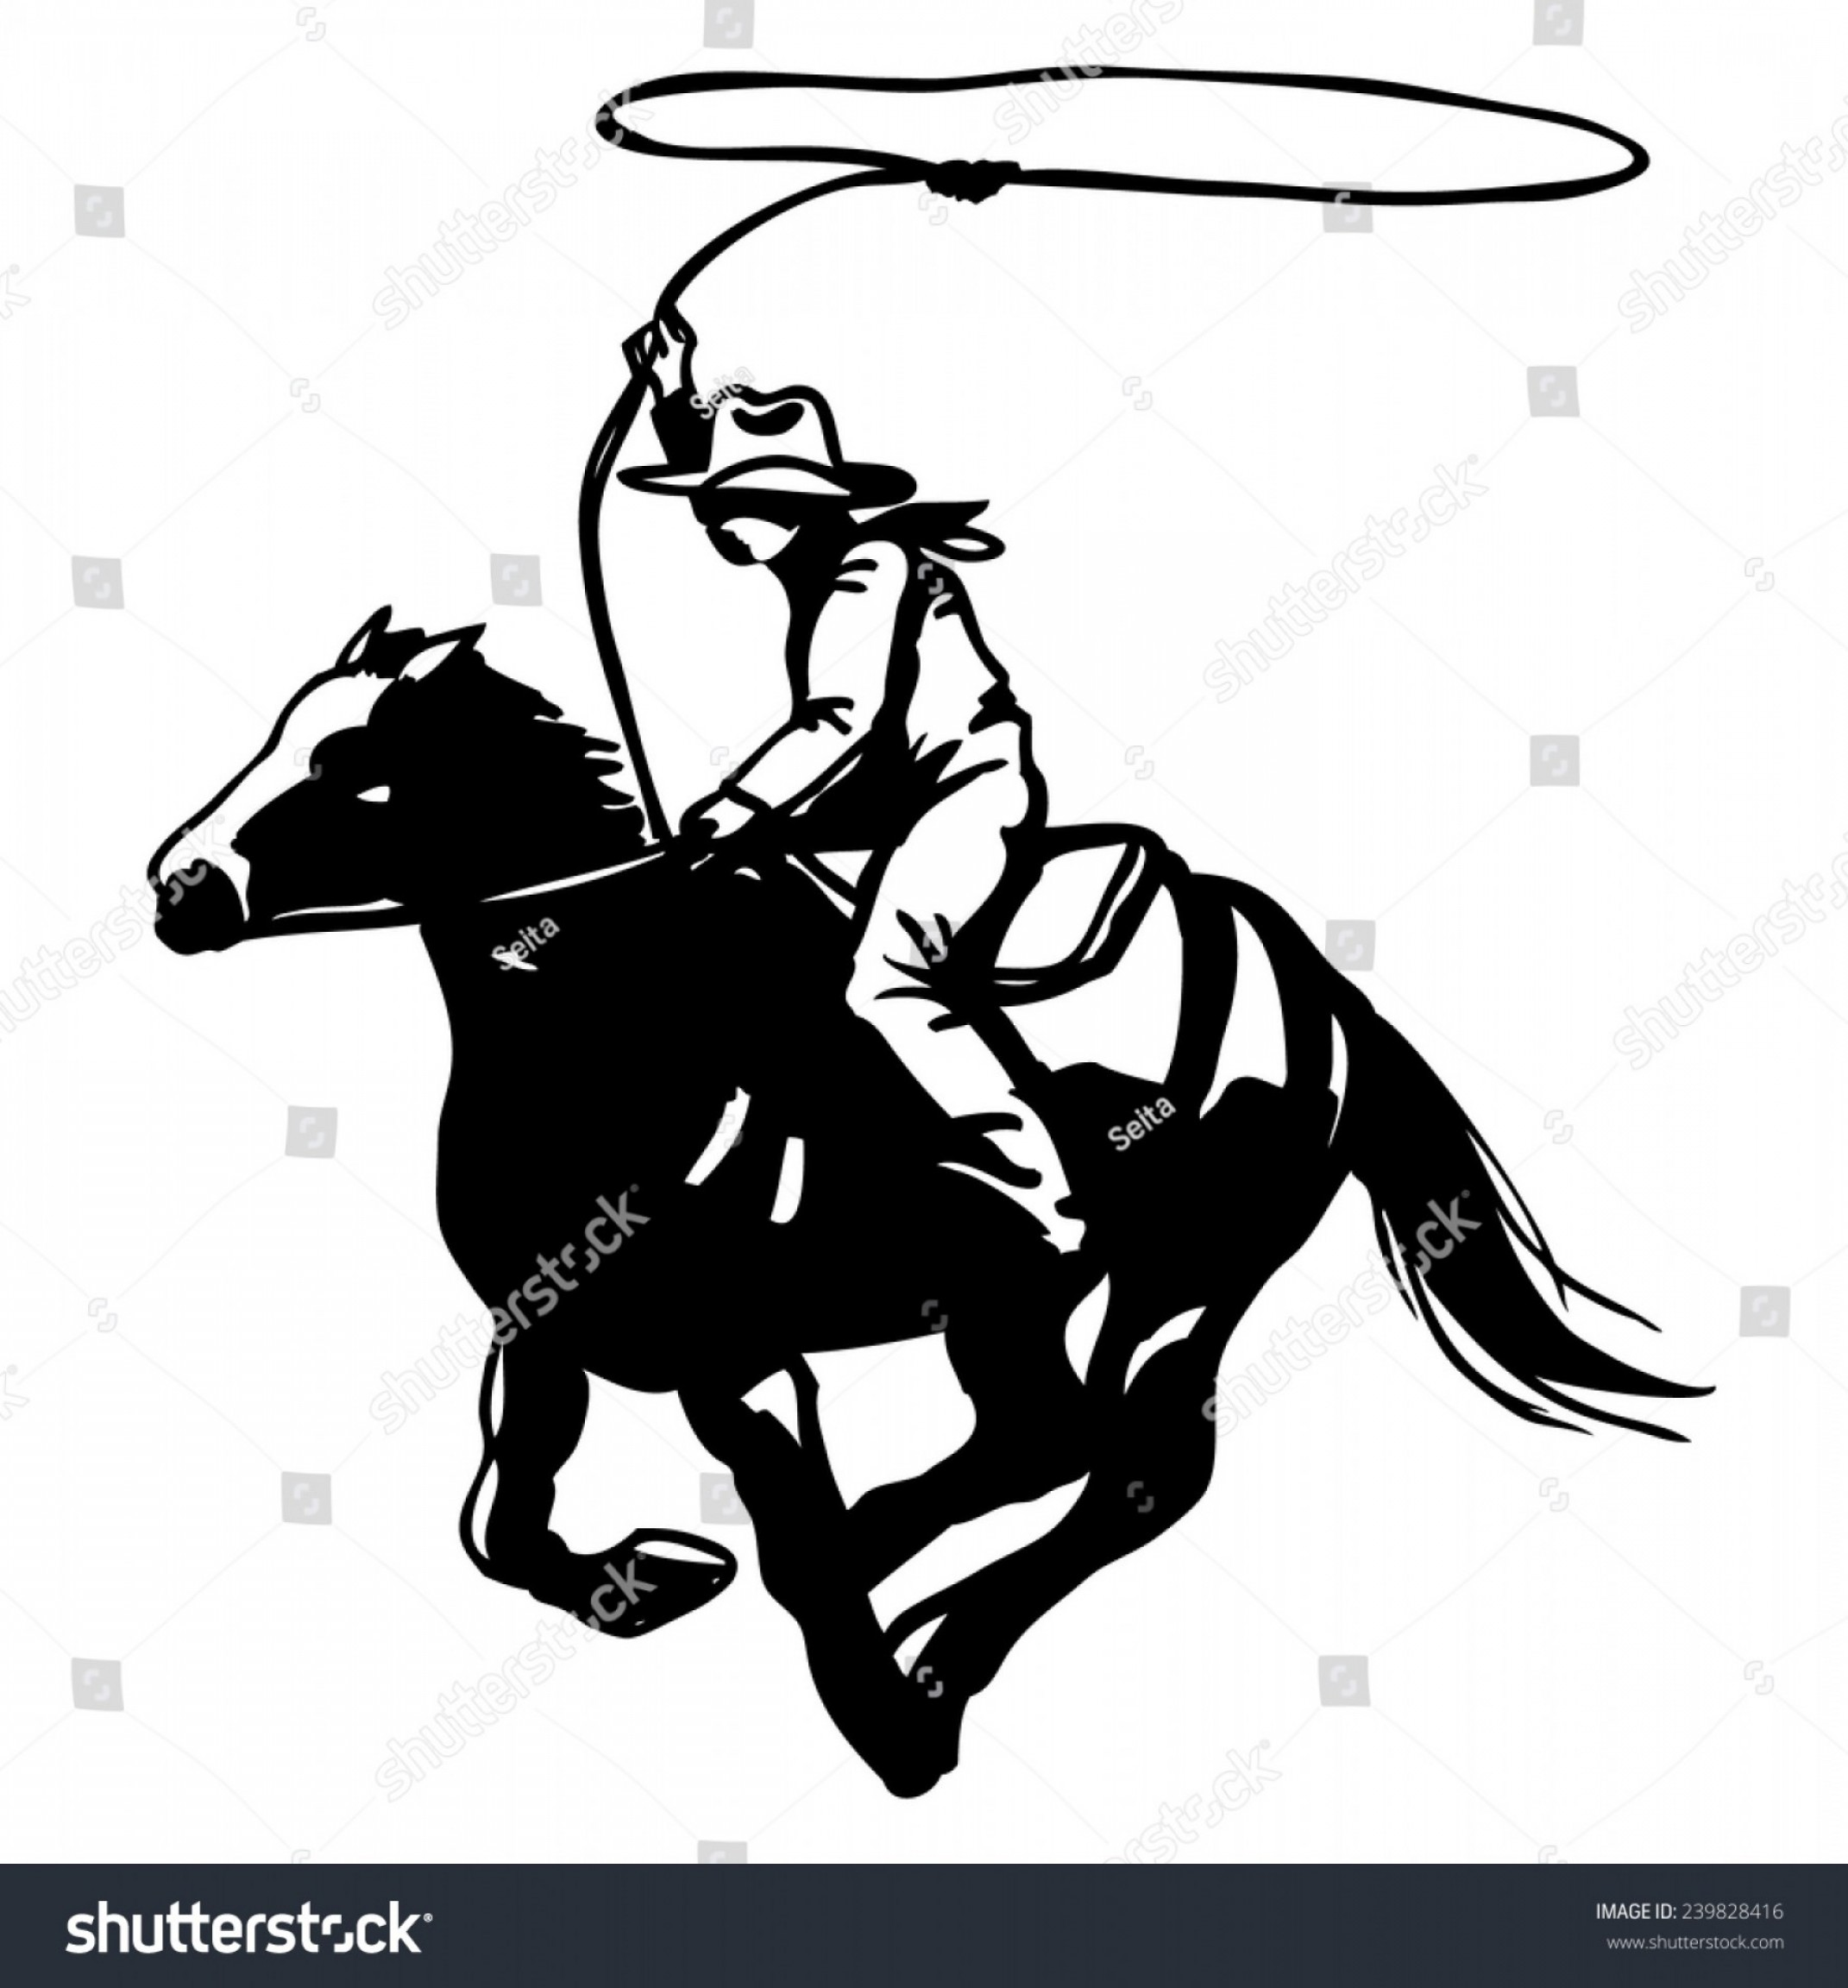 Barrel Racer Vector: Cowboy Lasso On Horse Silhouette Vector